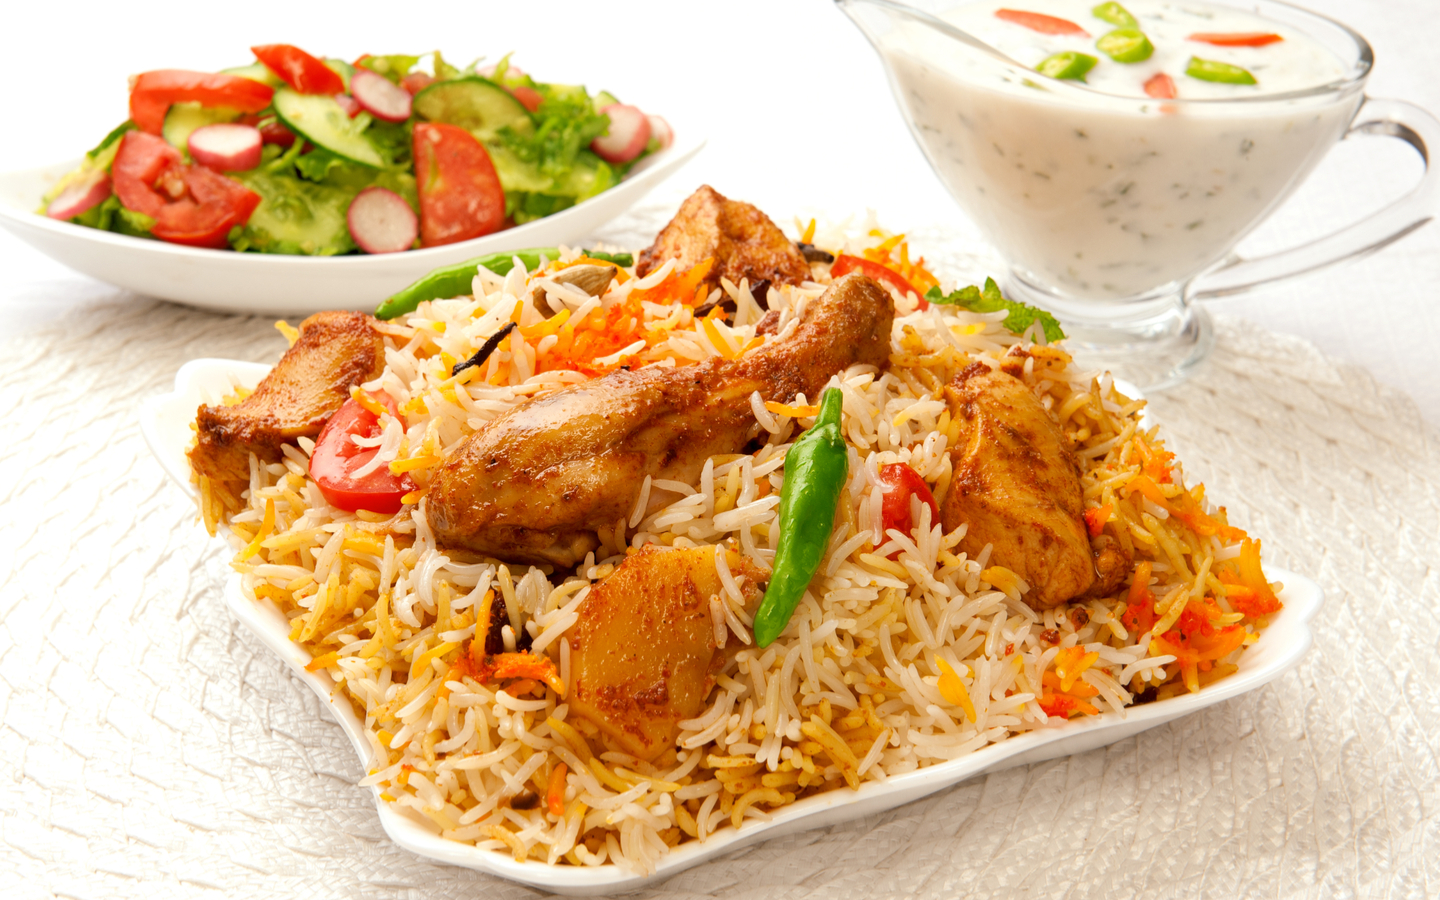 If Biryani is your favourite food, you can enjoy it at various top-notch restaurants in Business Bay.